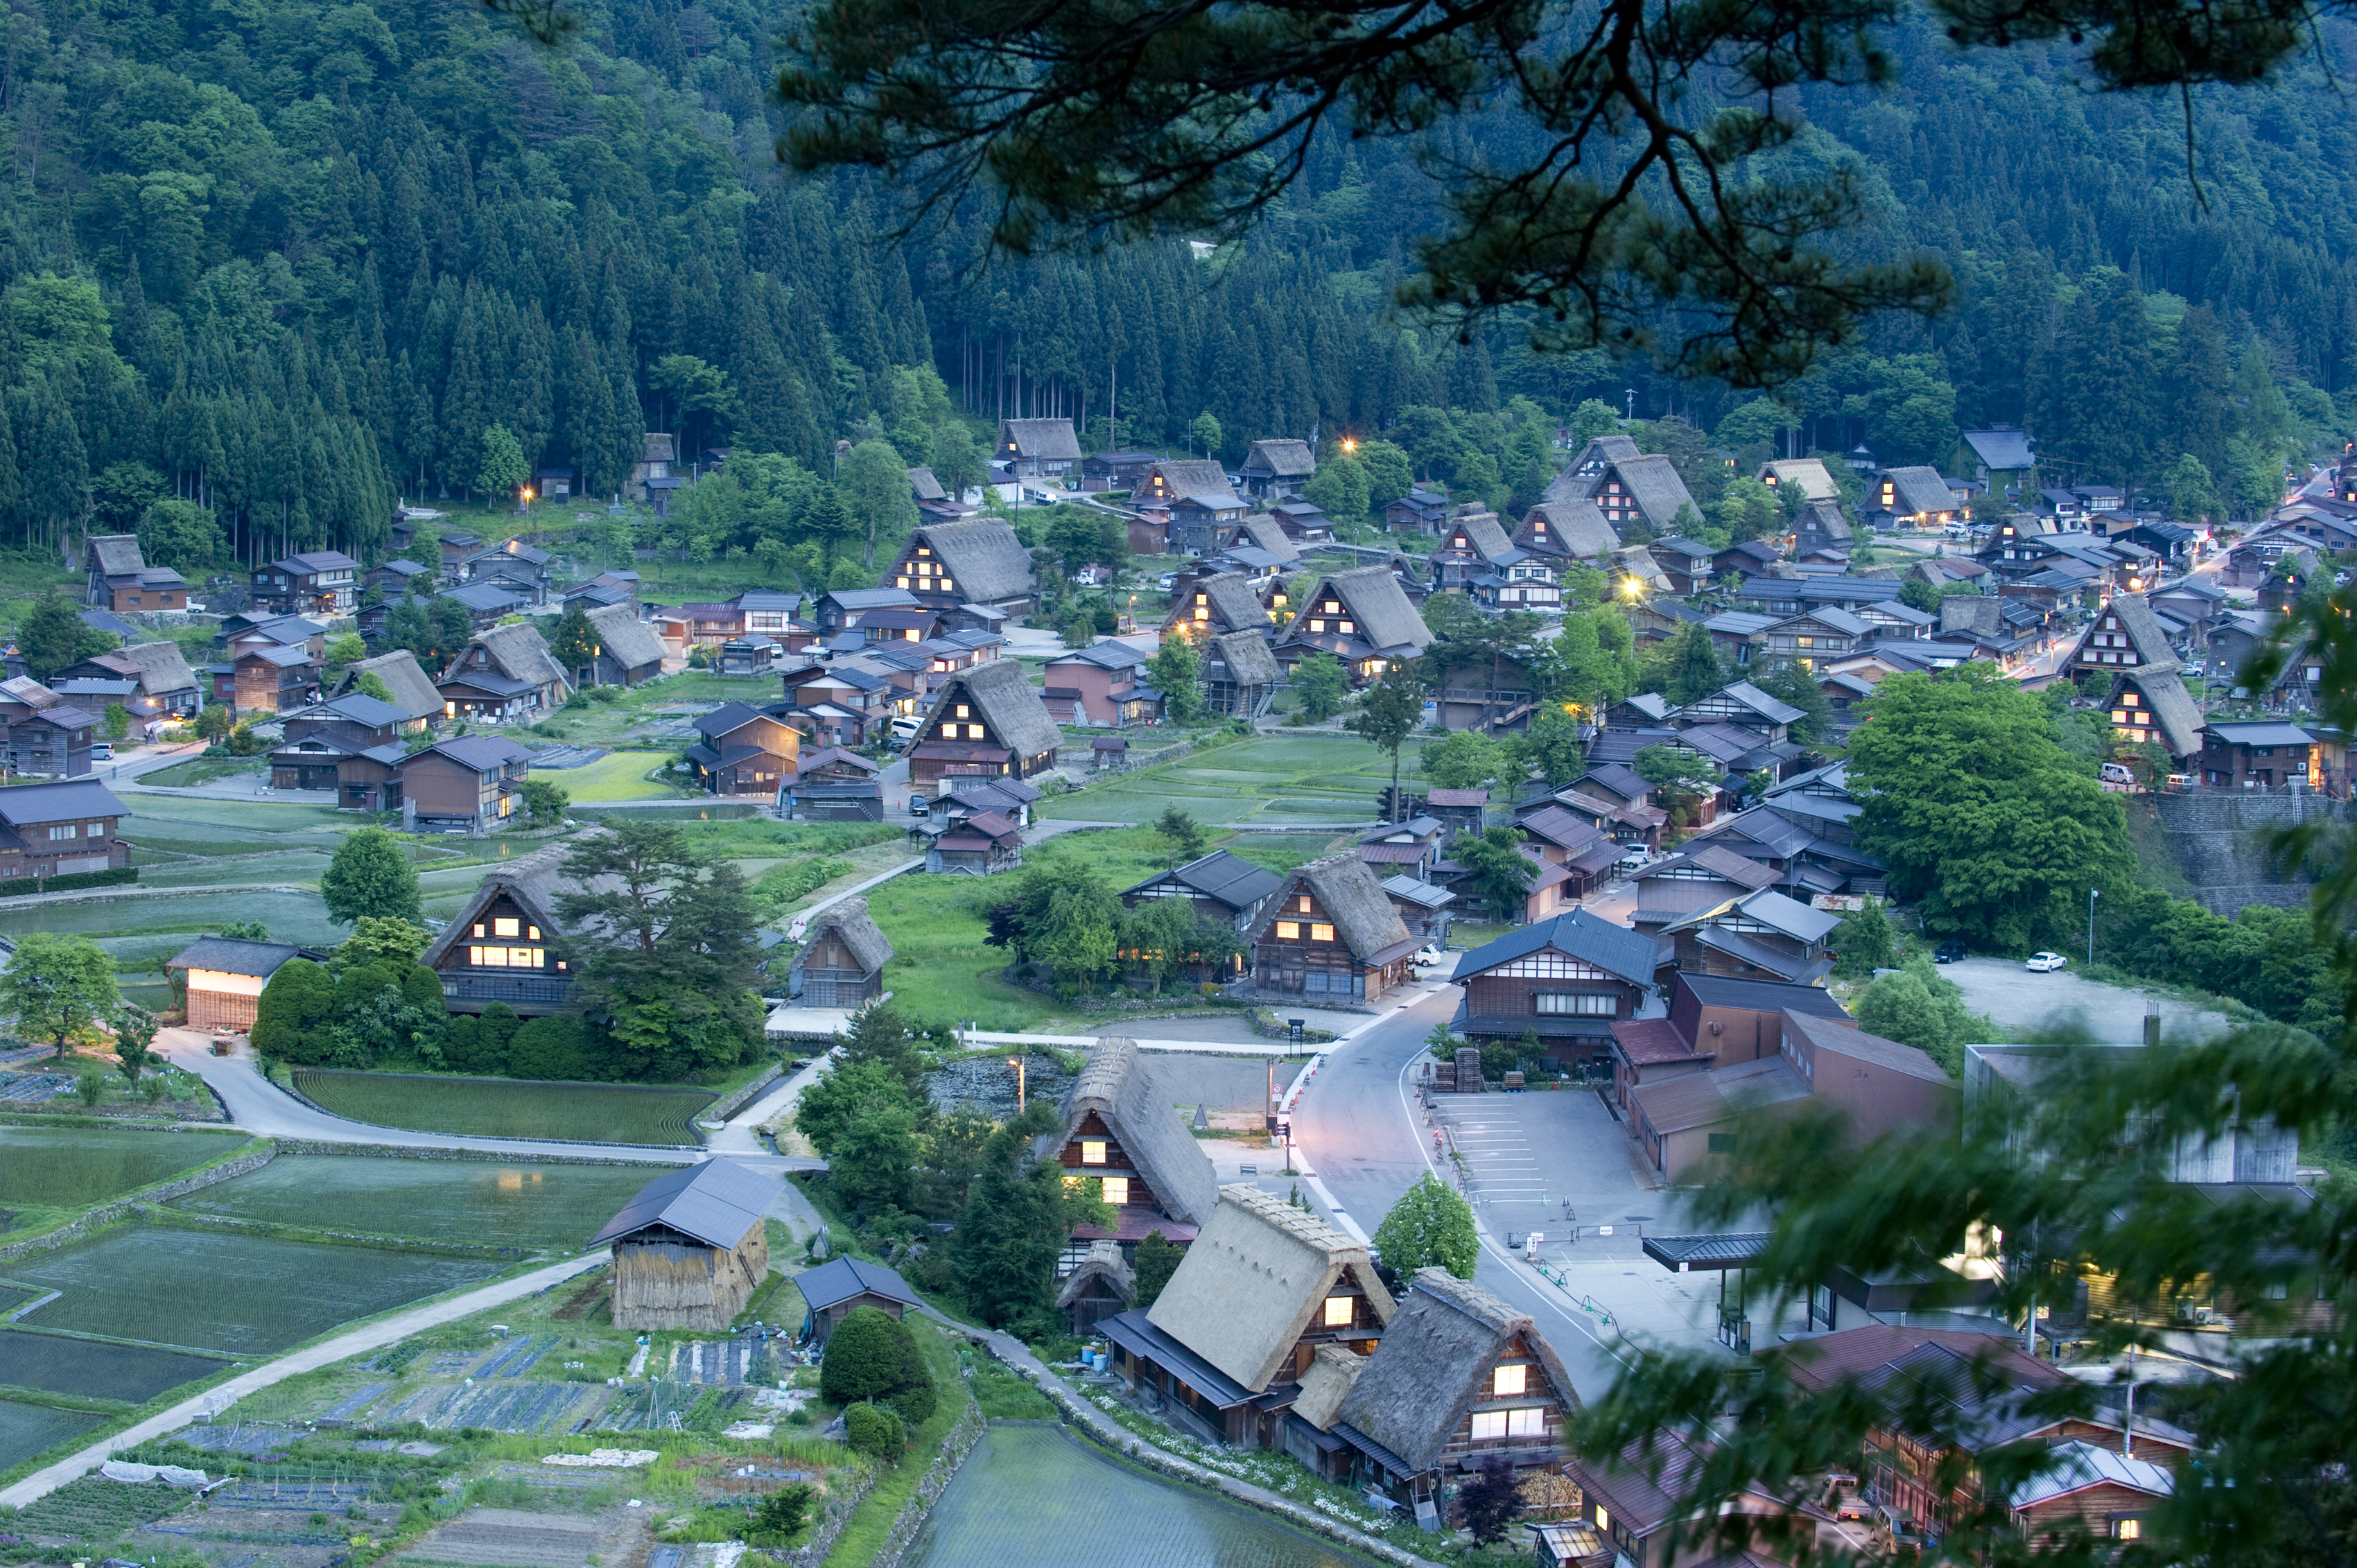 shirakawago gifu japan